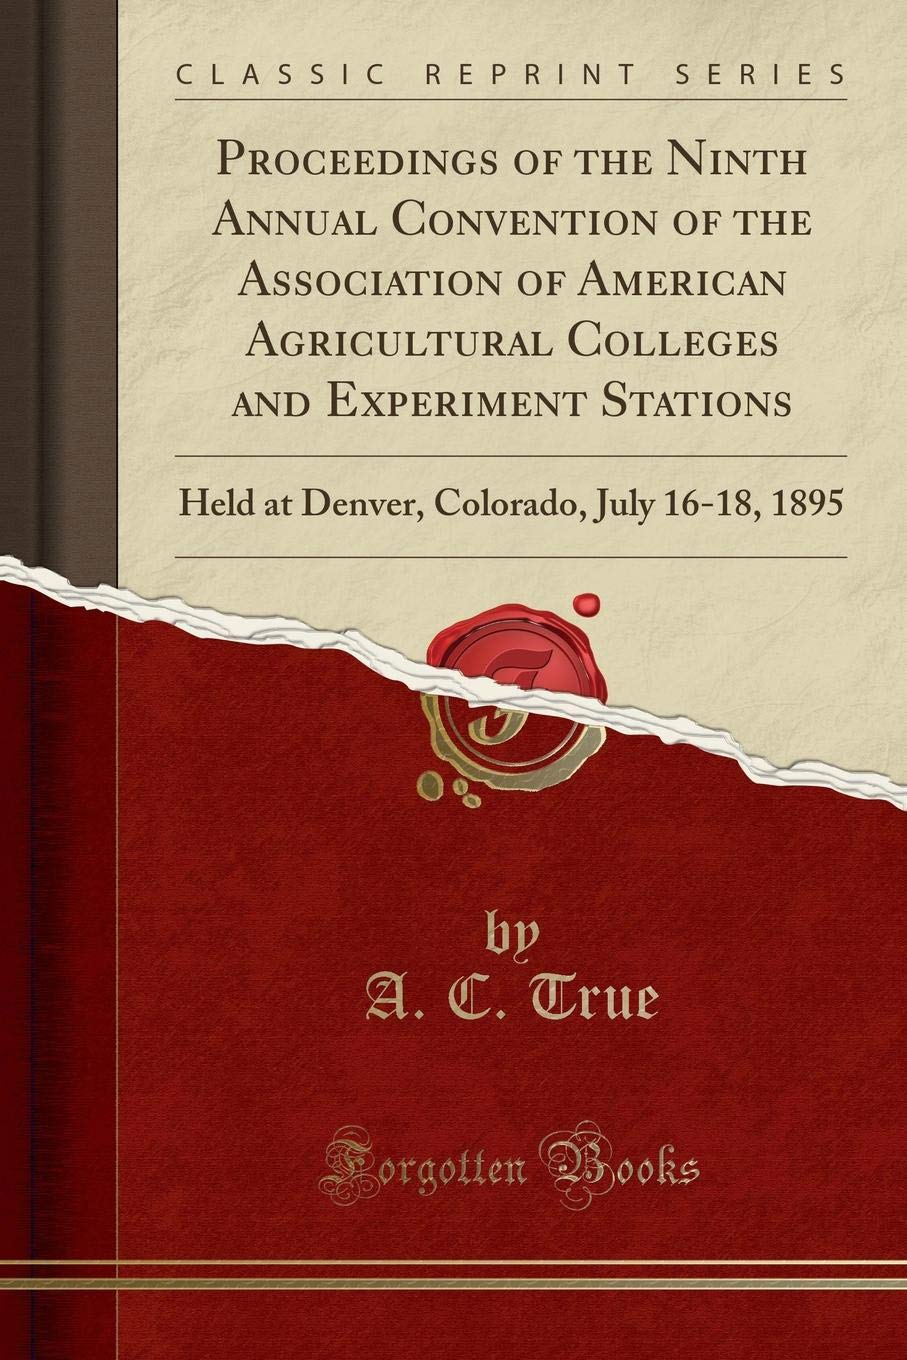 Download Proceedings of the Ninth Annual Convention of the Association of American Agricultural Colleges and Experiment Stations: Held at Denver, Colorado, July 16-18, 1895 (Classic Reprint) PDF